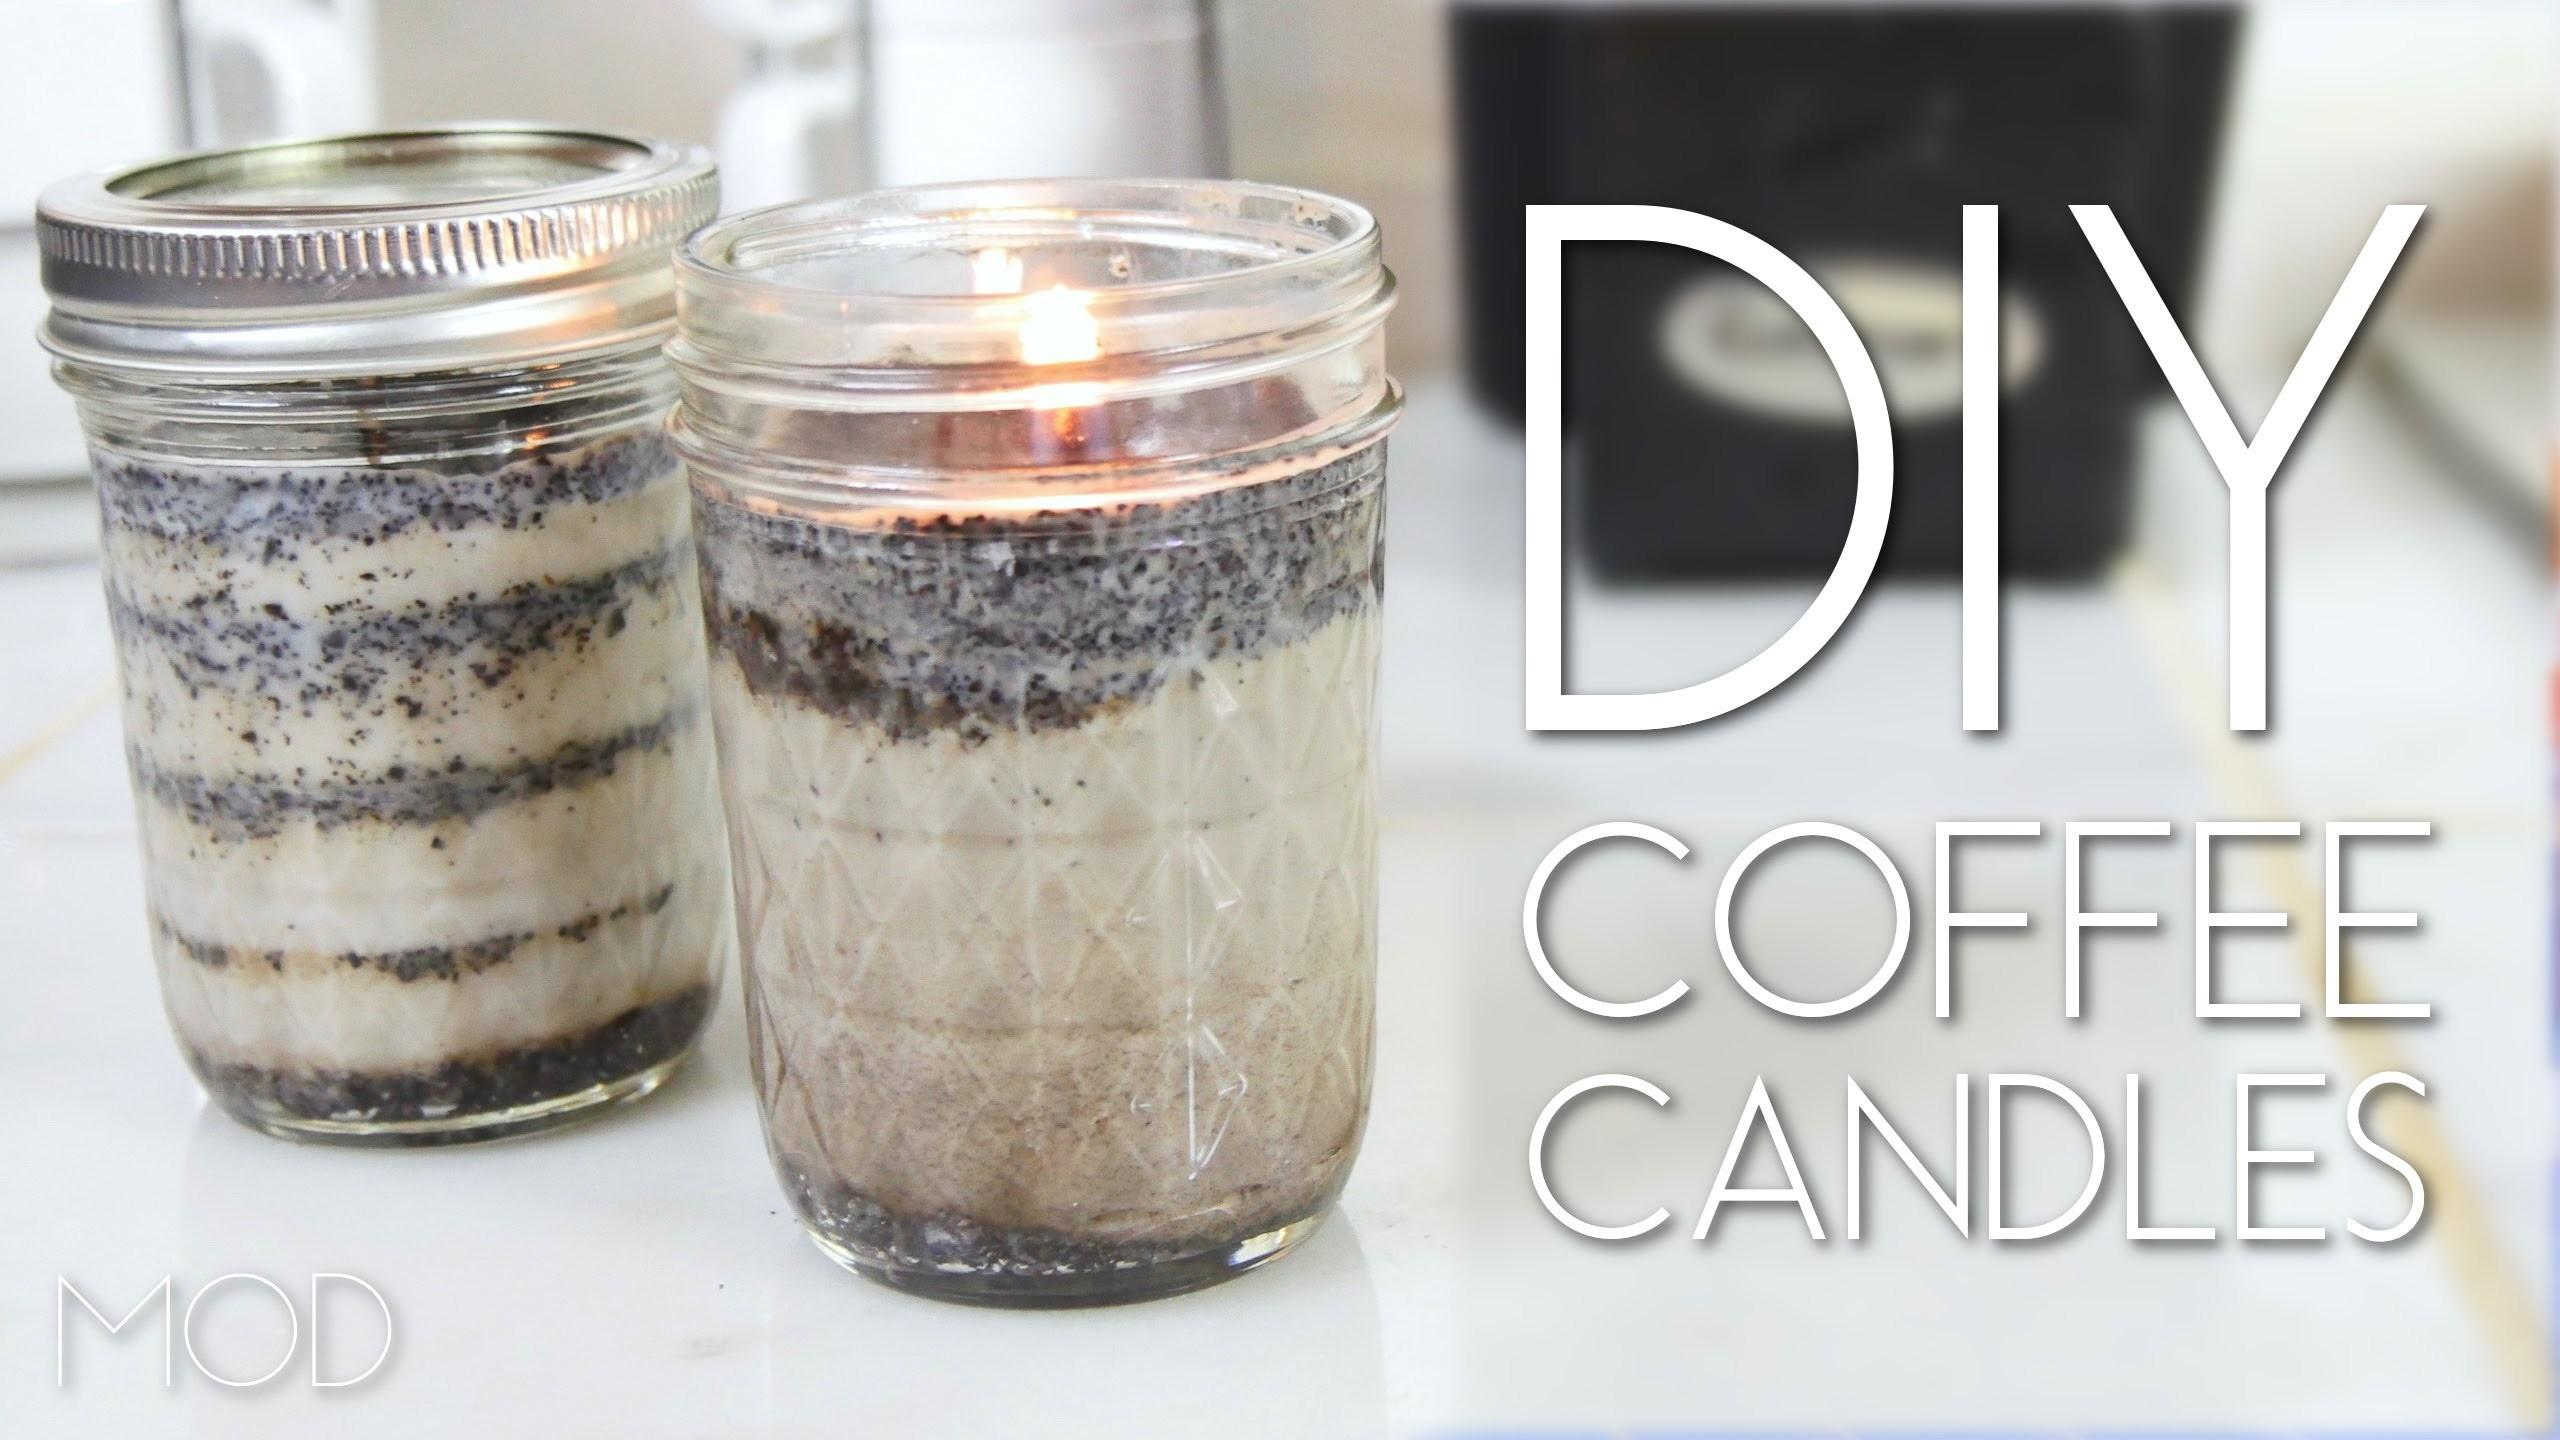 Diy Coffee Candles Mini Mod